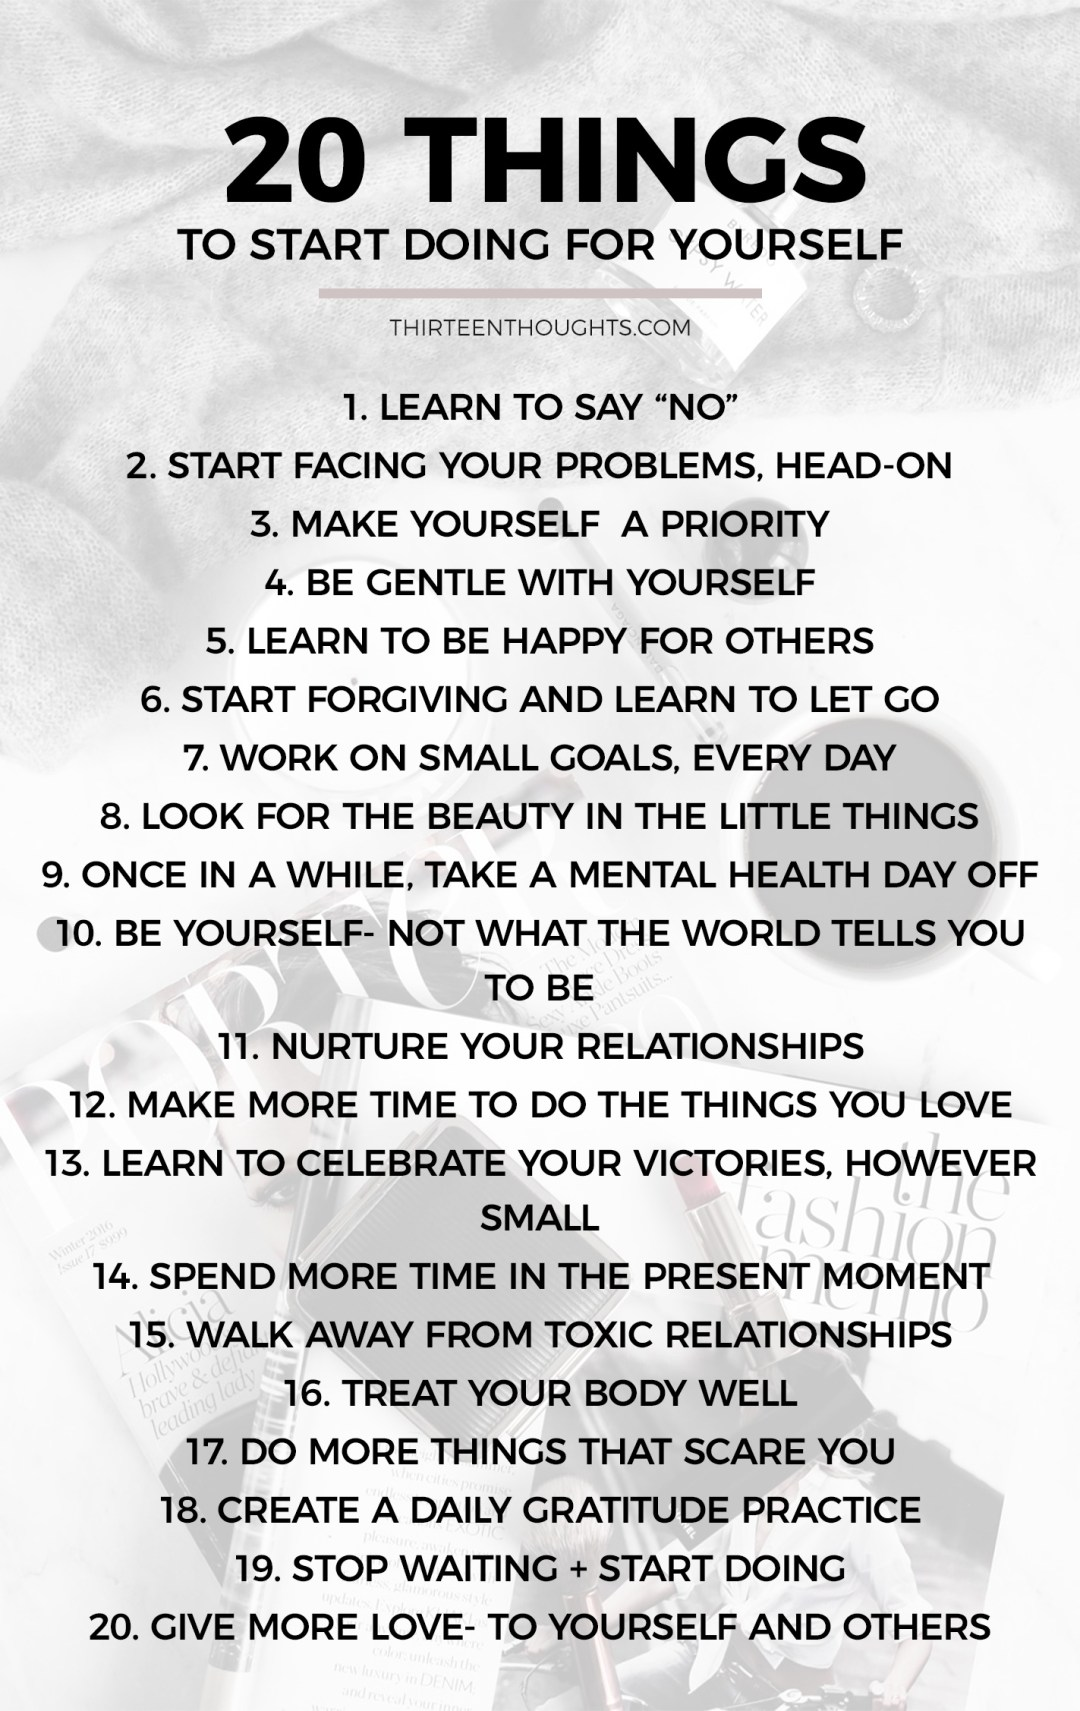 Things to do for yourself